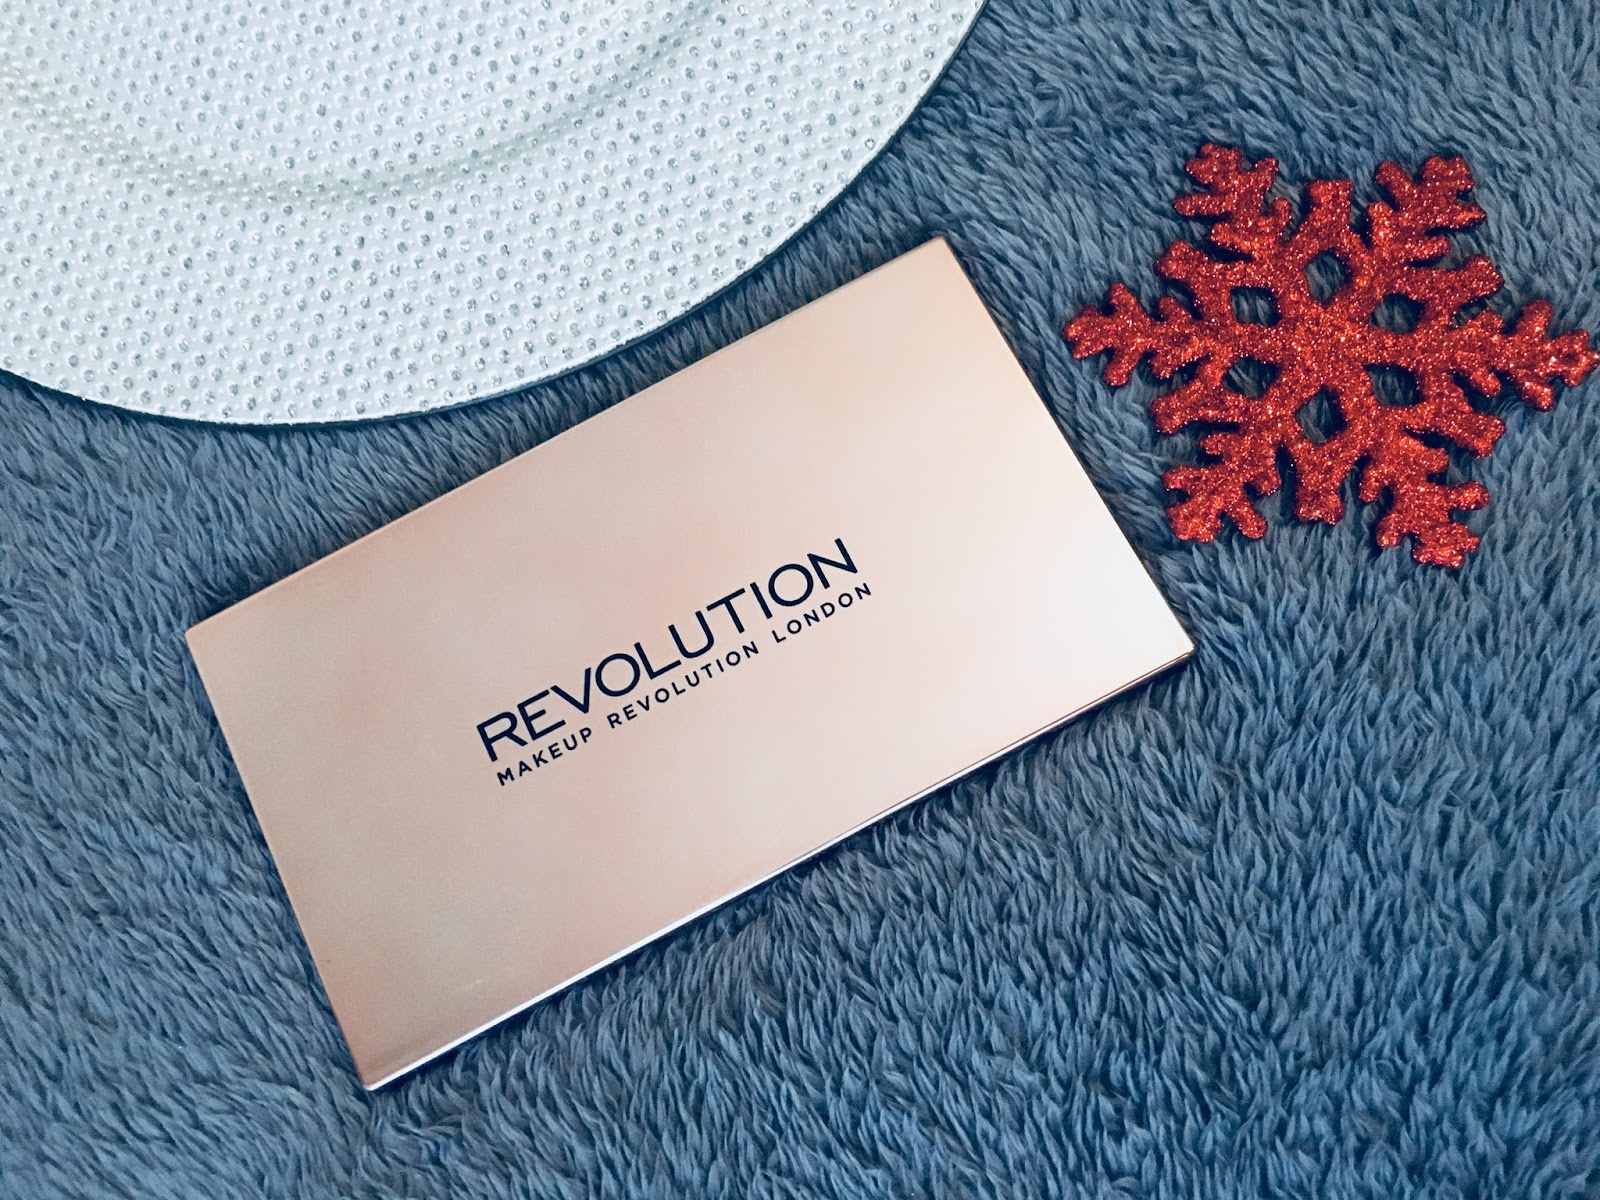 MAKEUP REVOLUTION: FLAWLESS 4